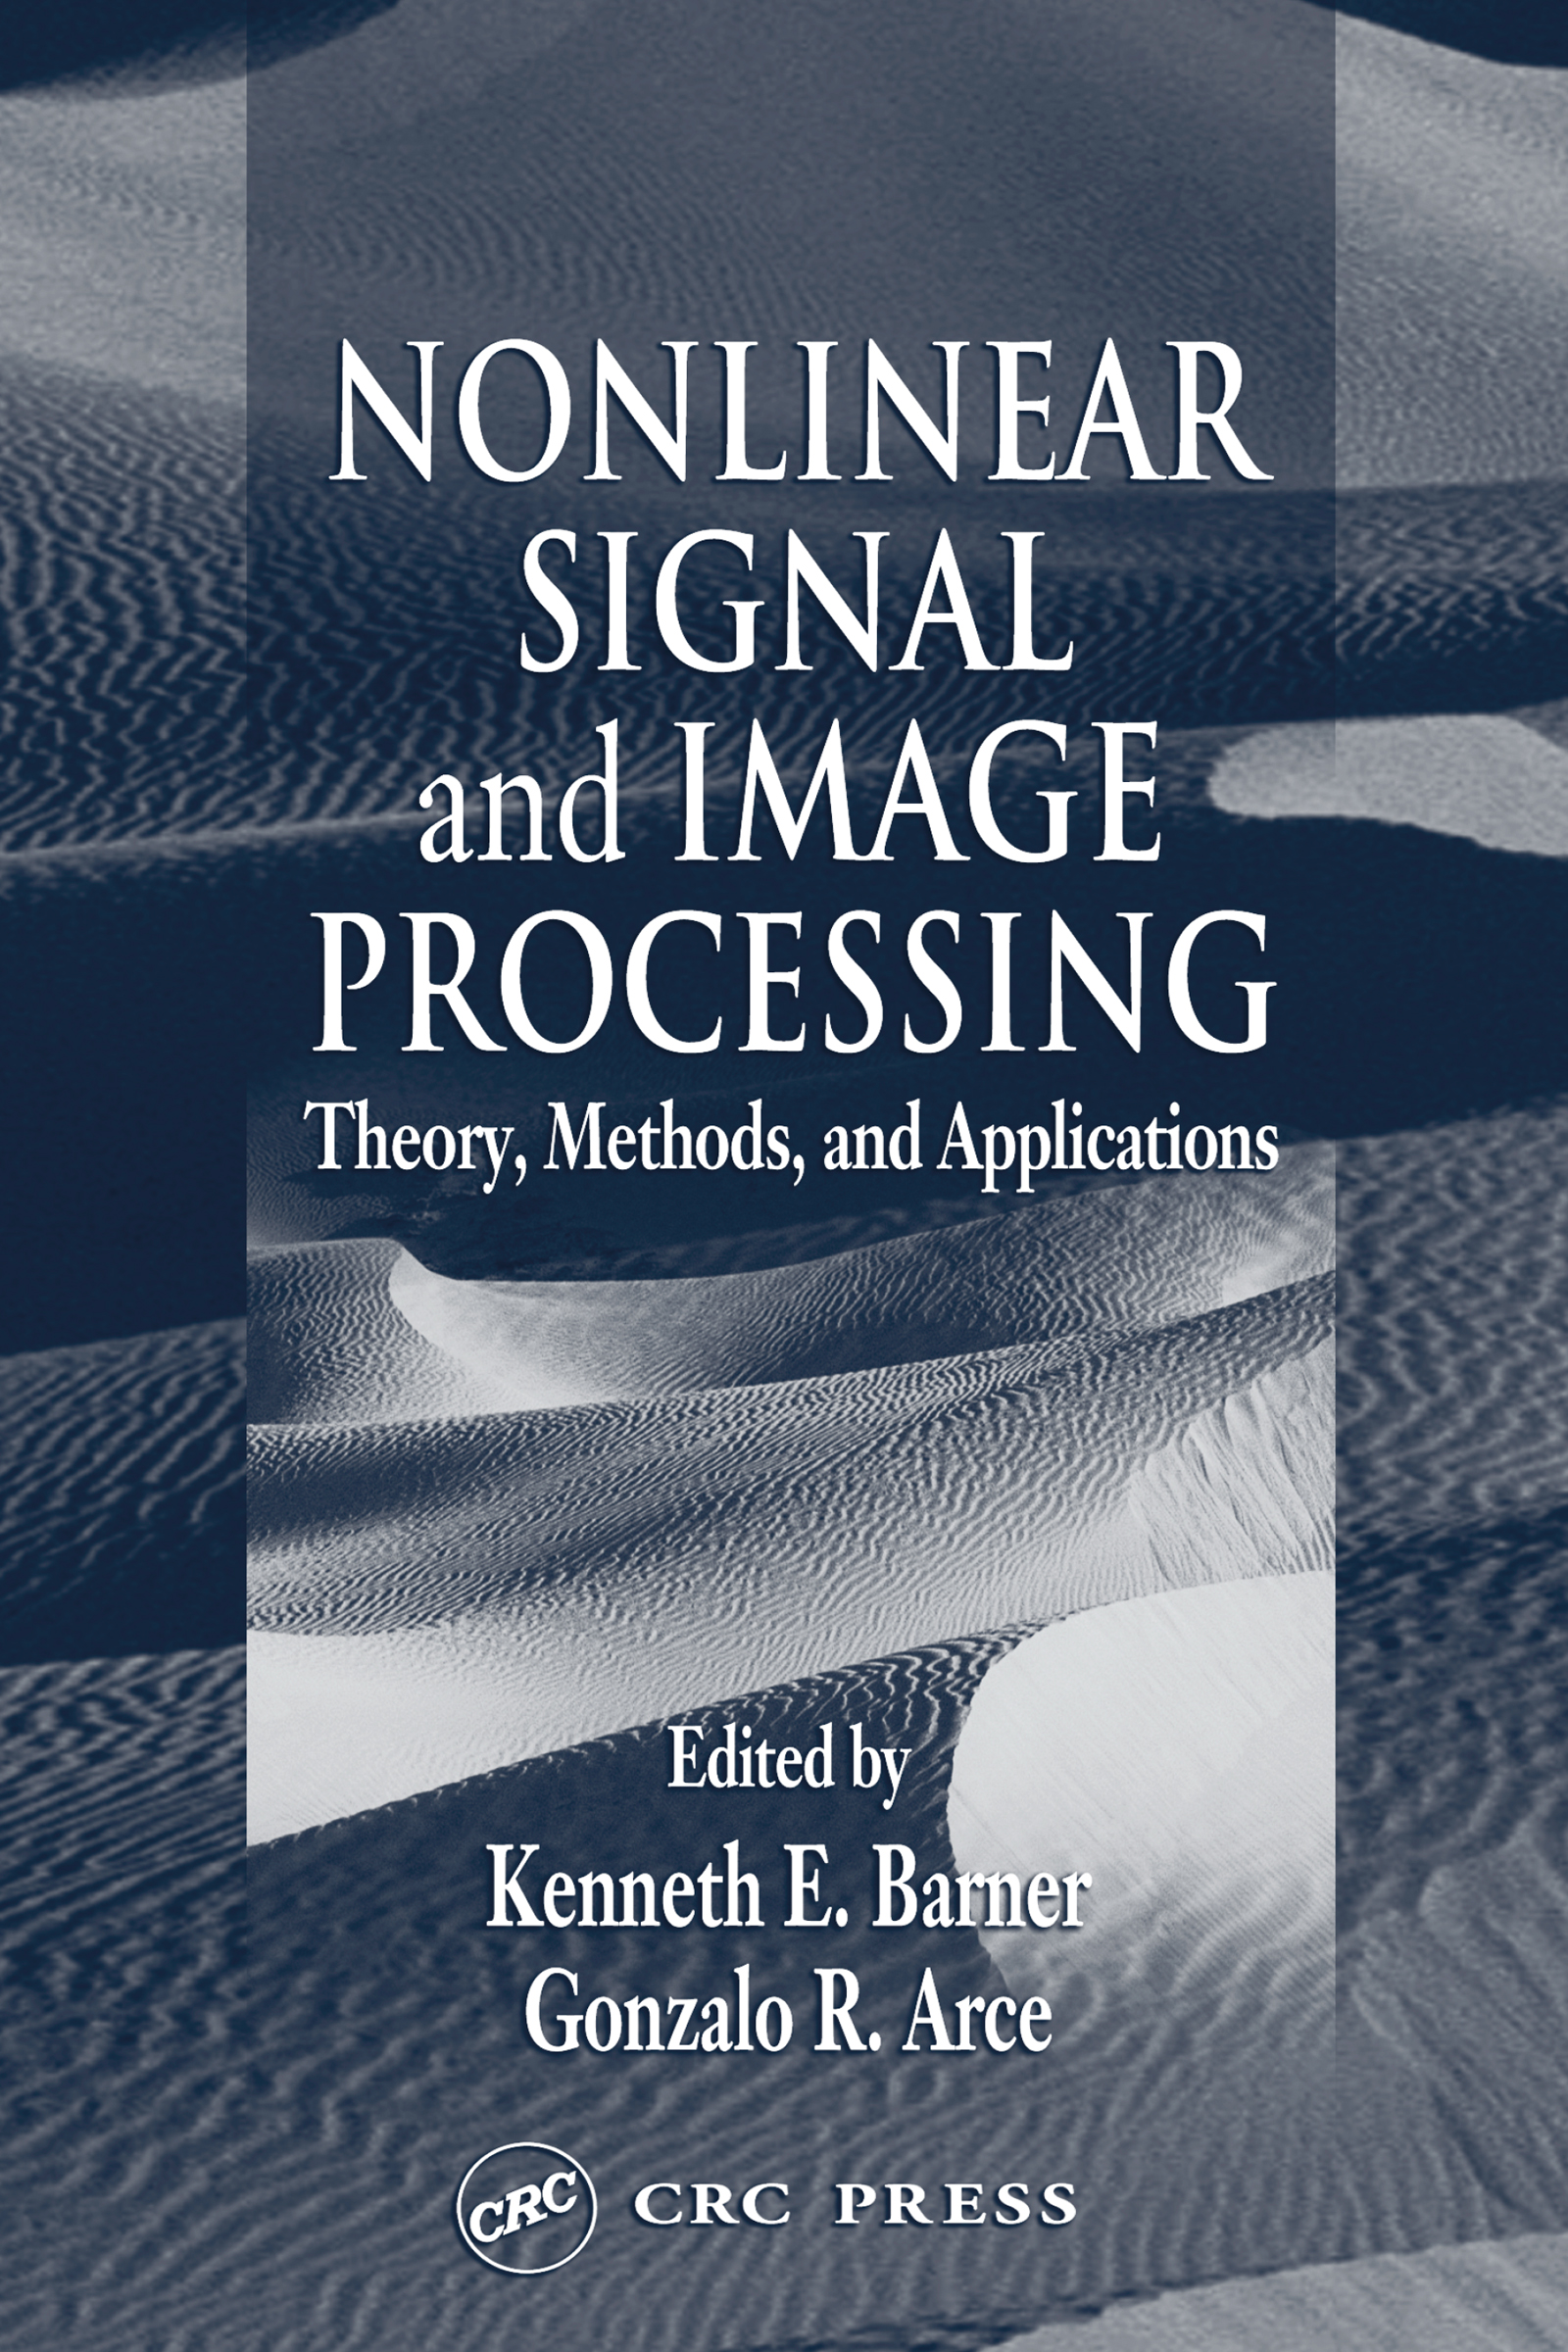 Nonlinear Signal and Image Processing: Theory, Methods, and Applications book cover